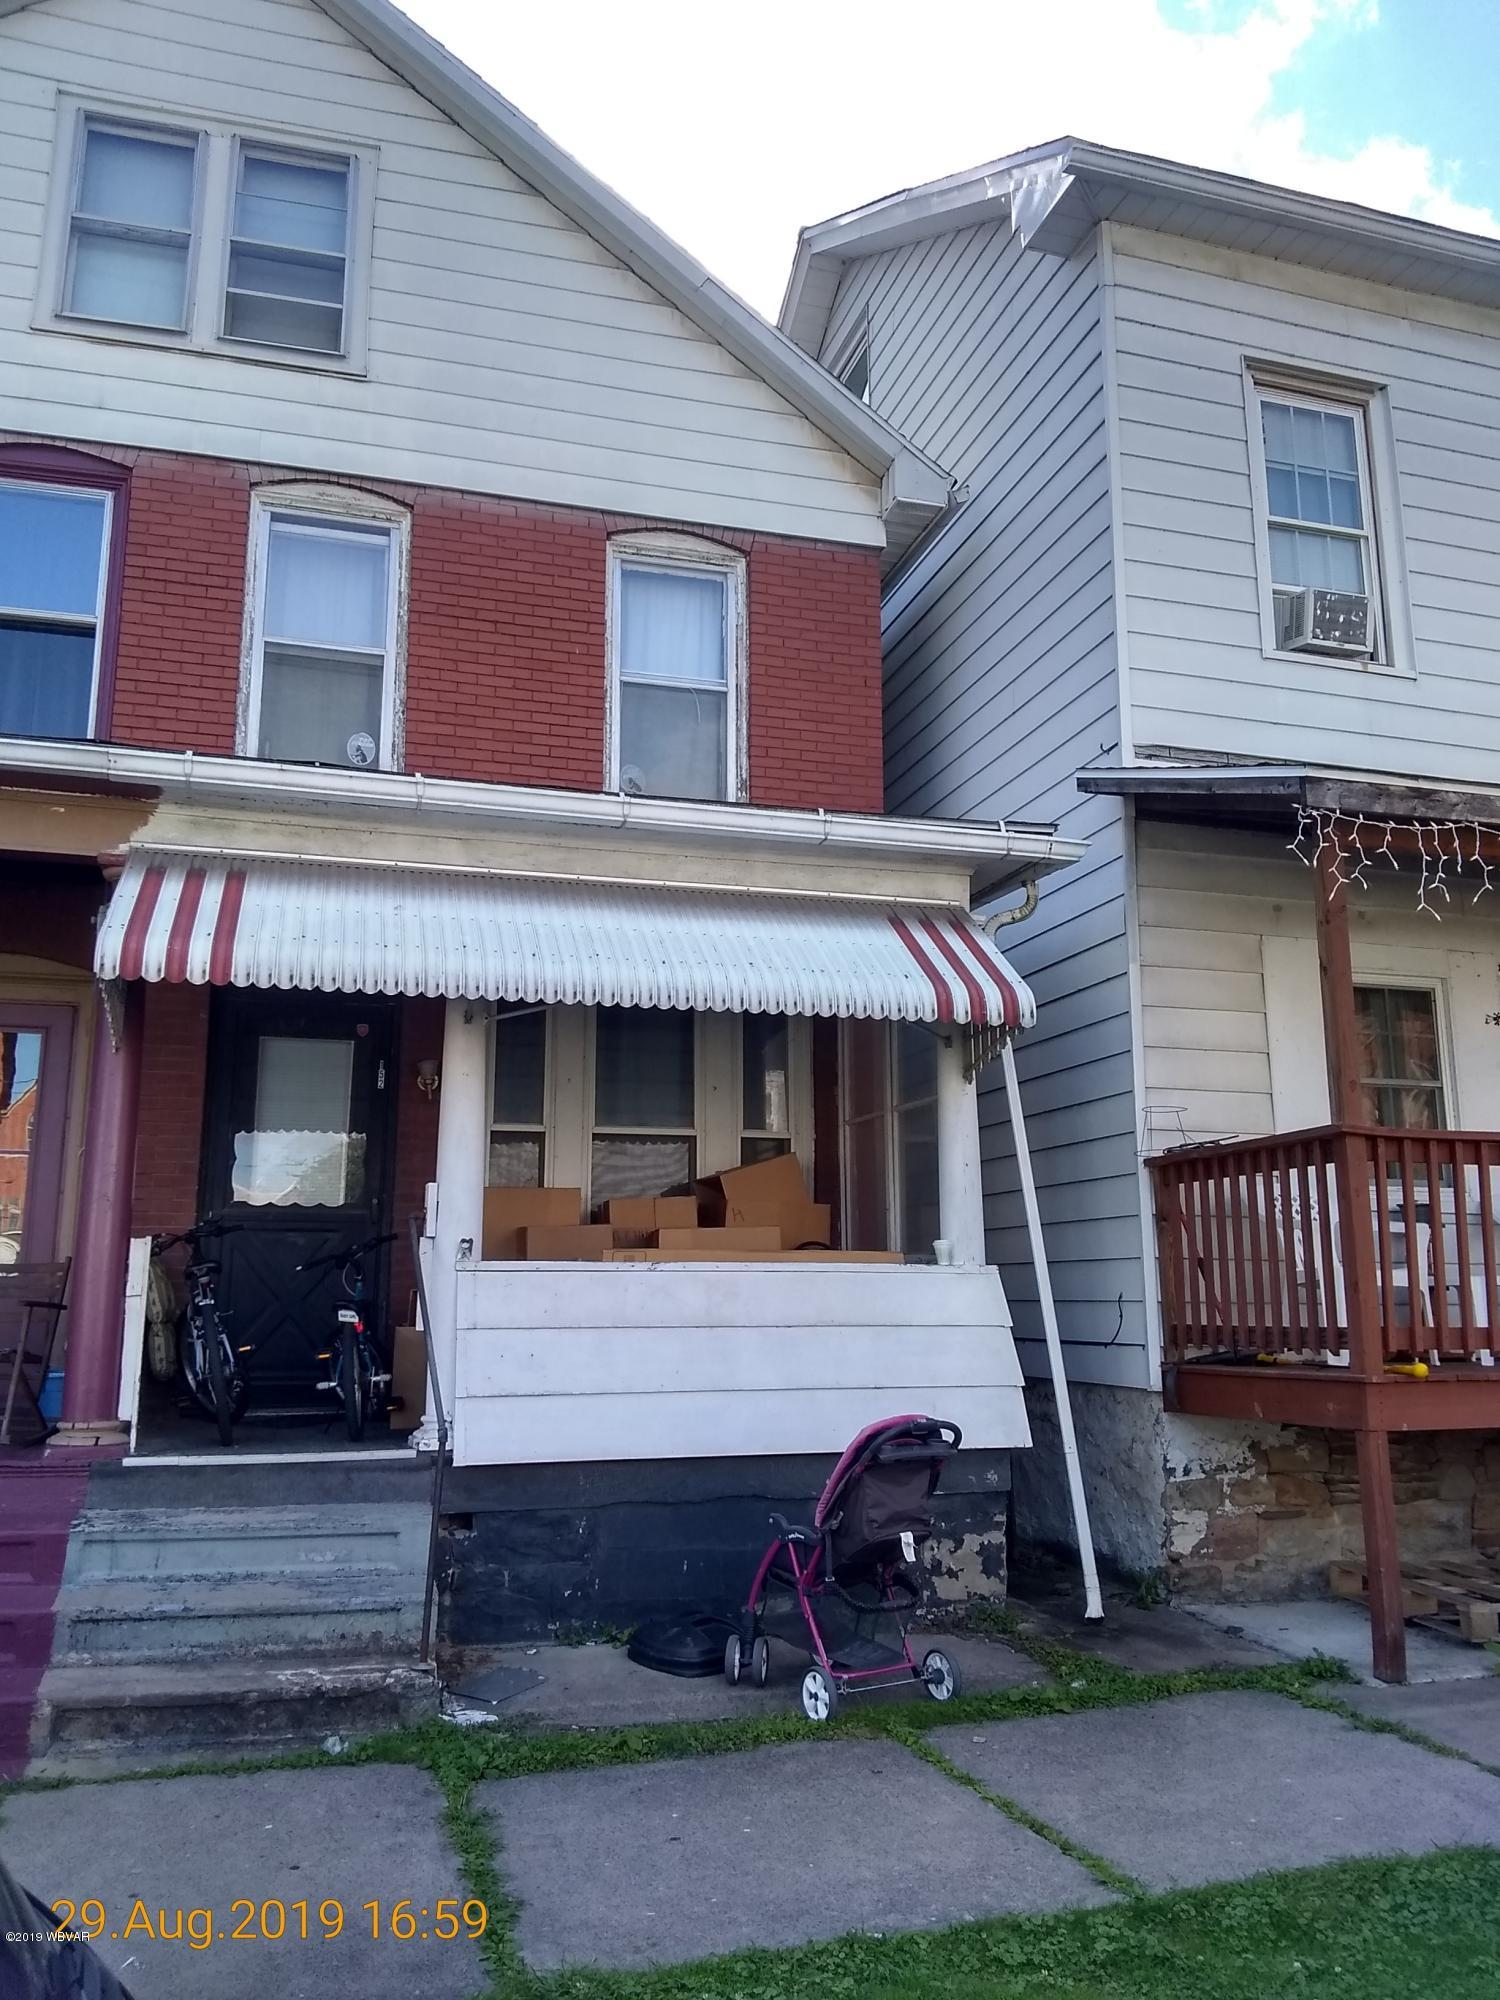 152 8TH STREET, Renovo, PA 17764, 3 Bedrooms Bedrooms, ,1 BathroomBathrooms,Residential,For sale,8TH,WB-88405